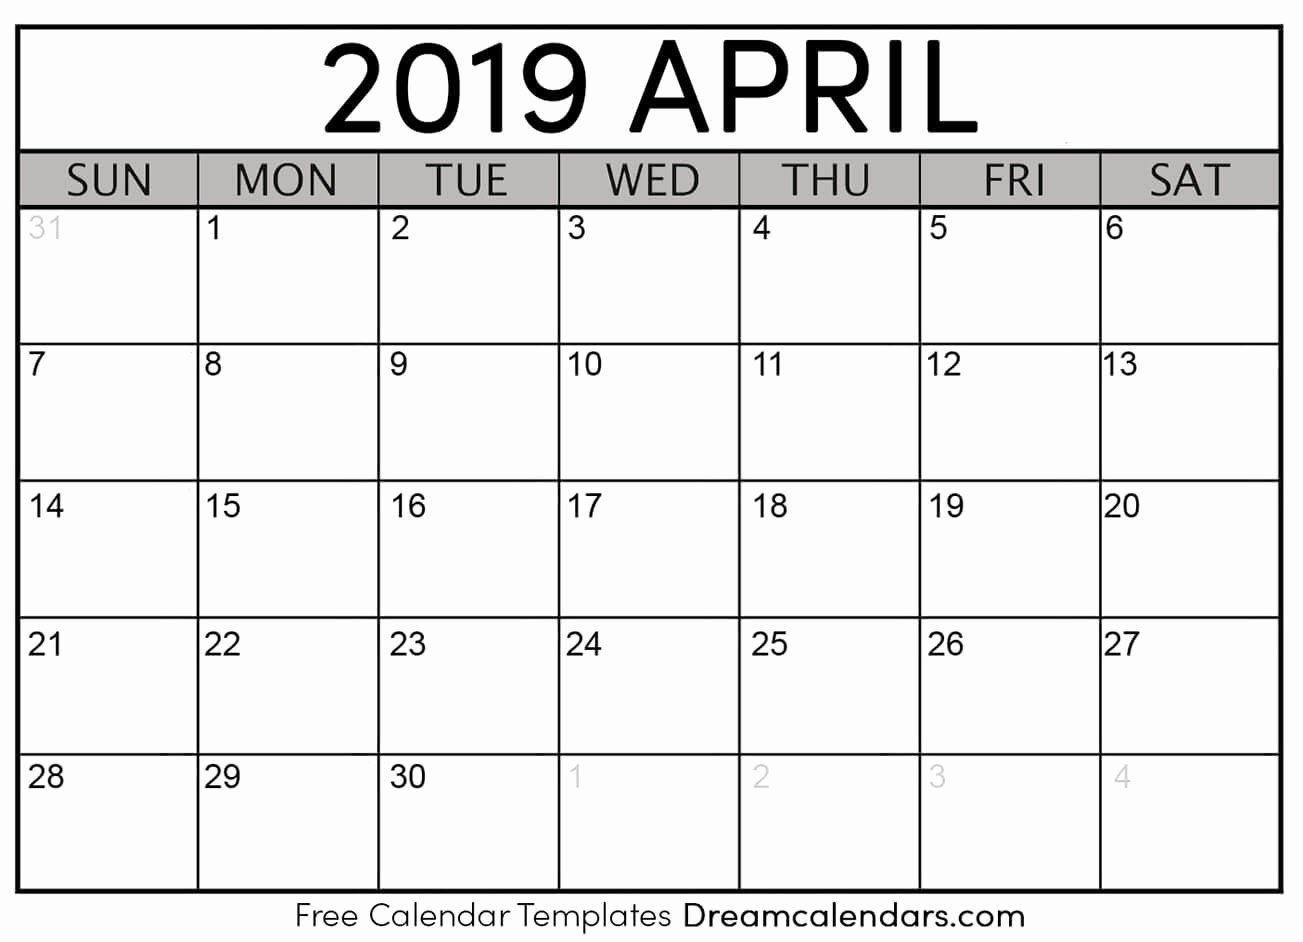 Blank Calendar Template 2019 Awesome How to A Printed or Printable Calendar for April 2019